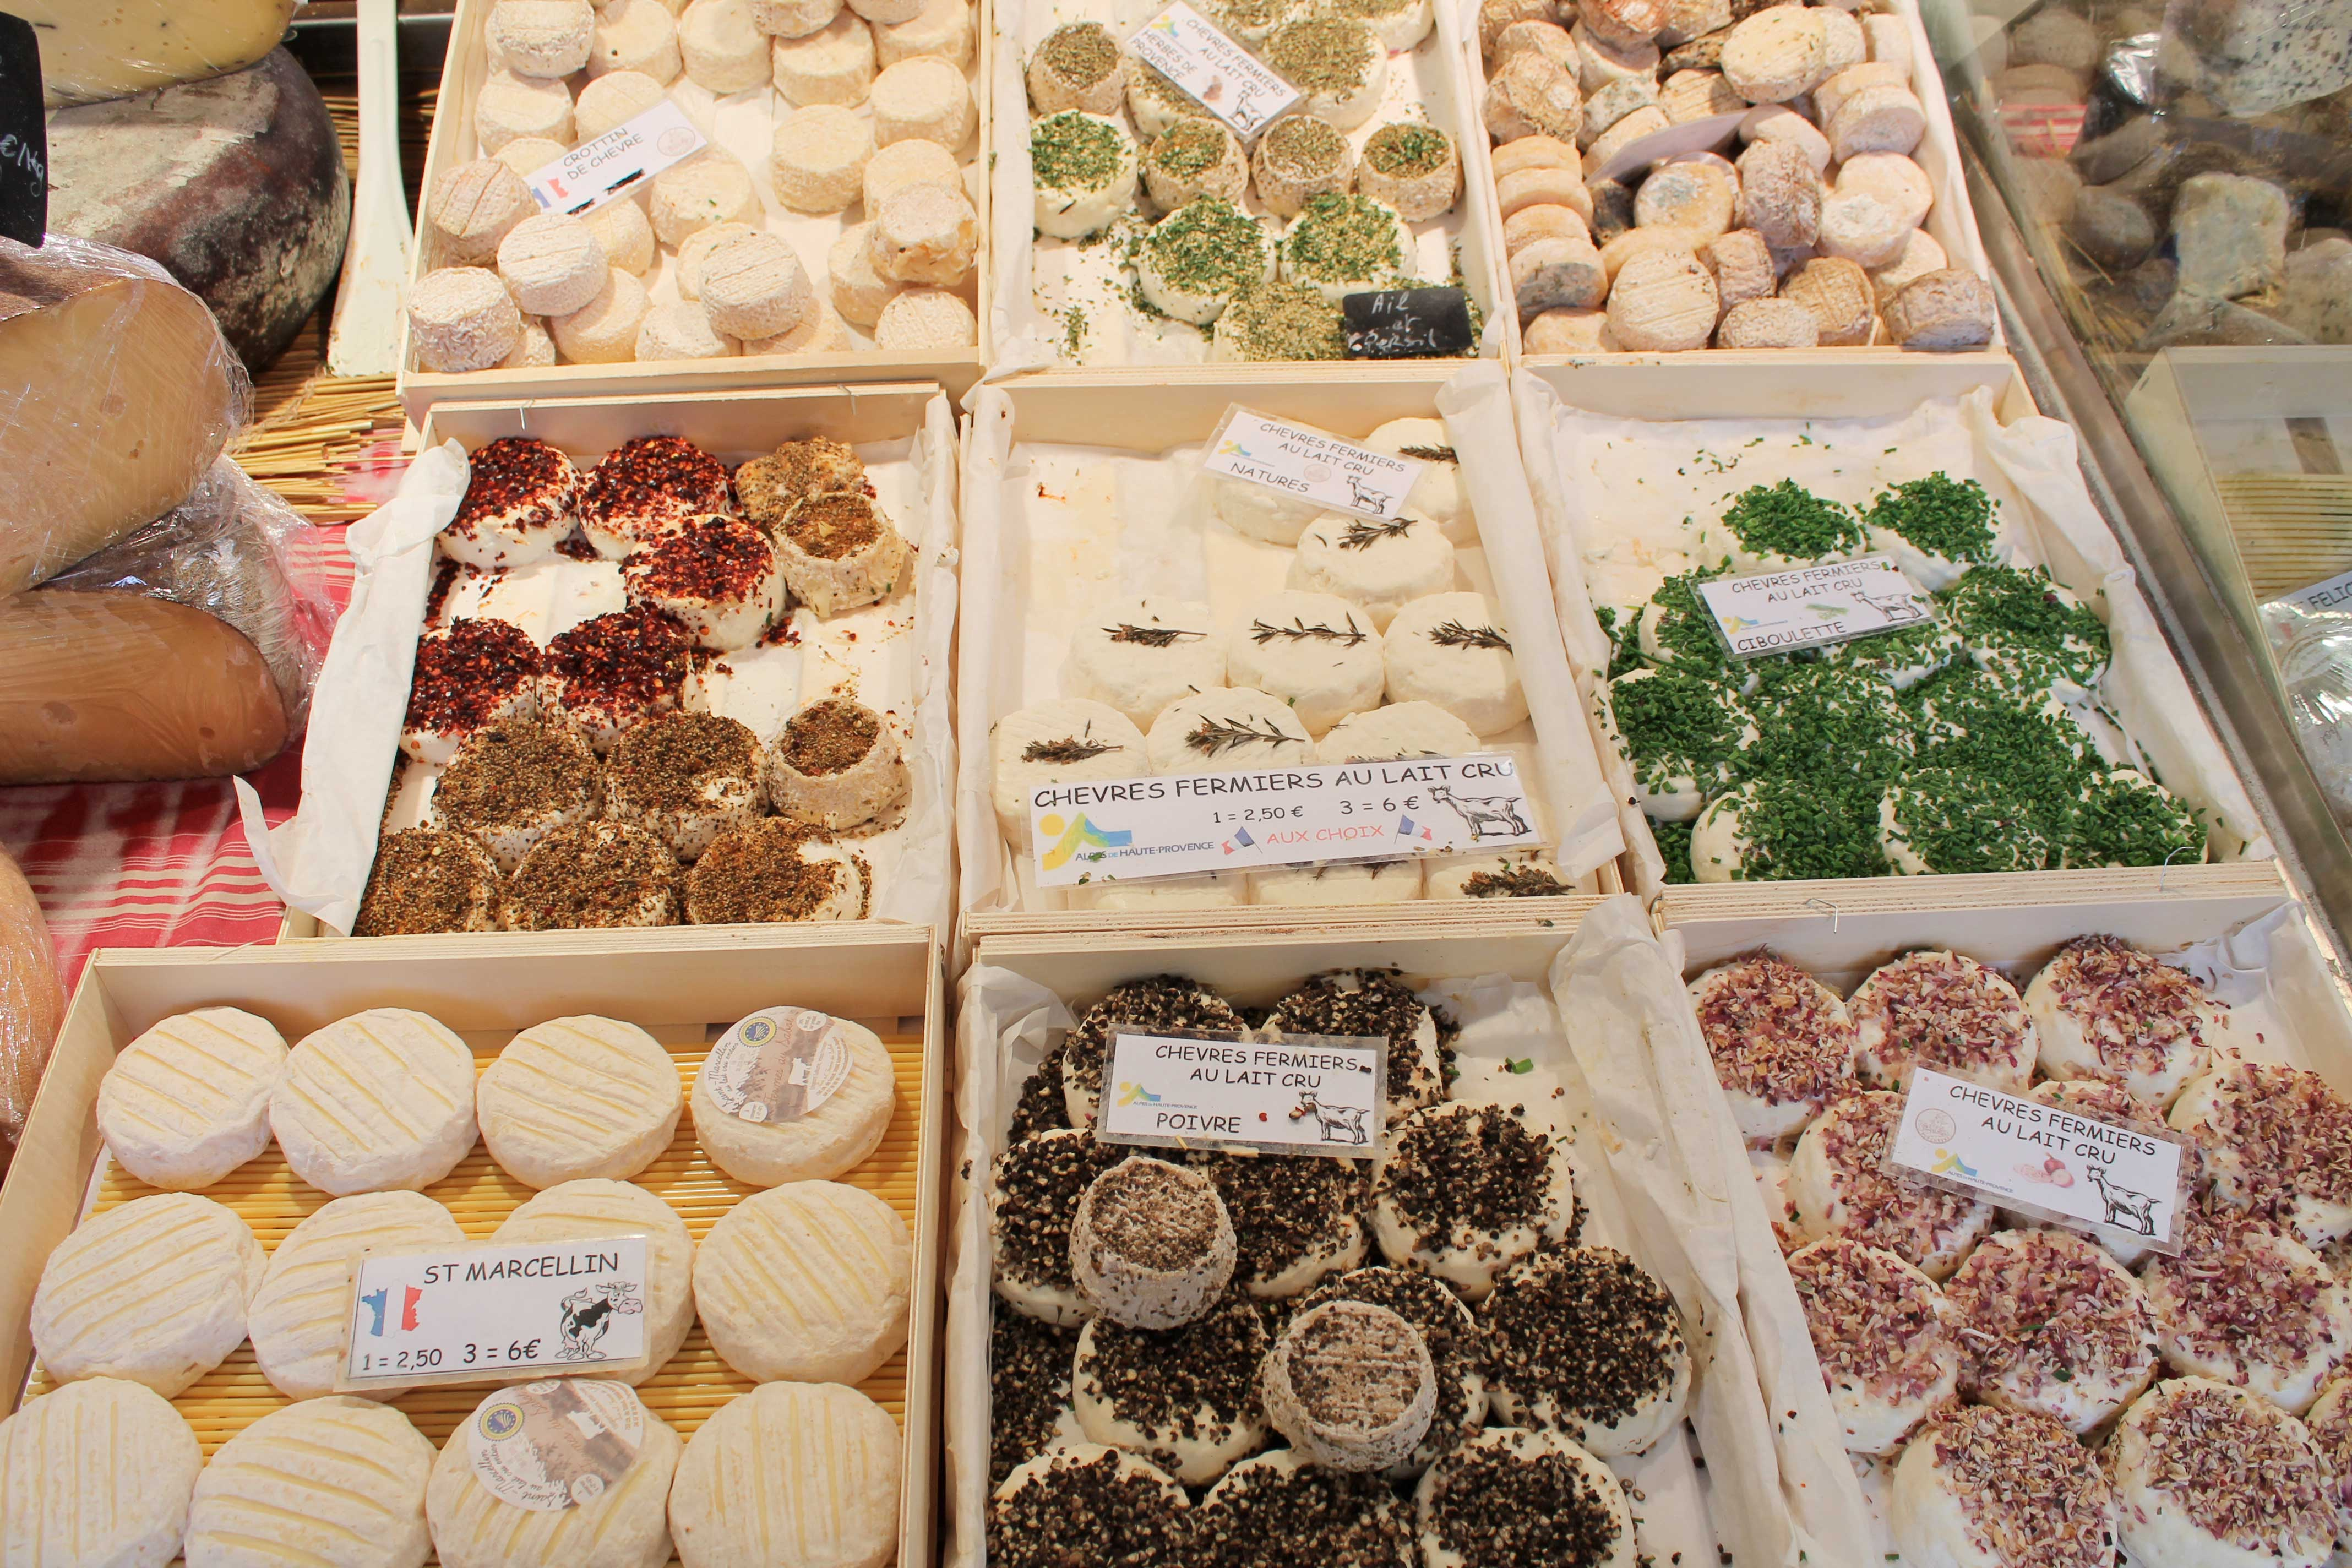 Shore excursion, goat cheese stall, Aix en Provence